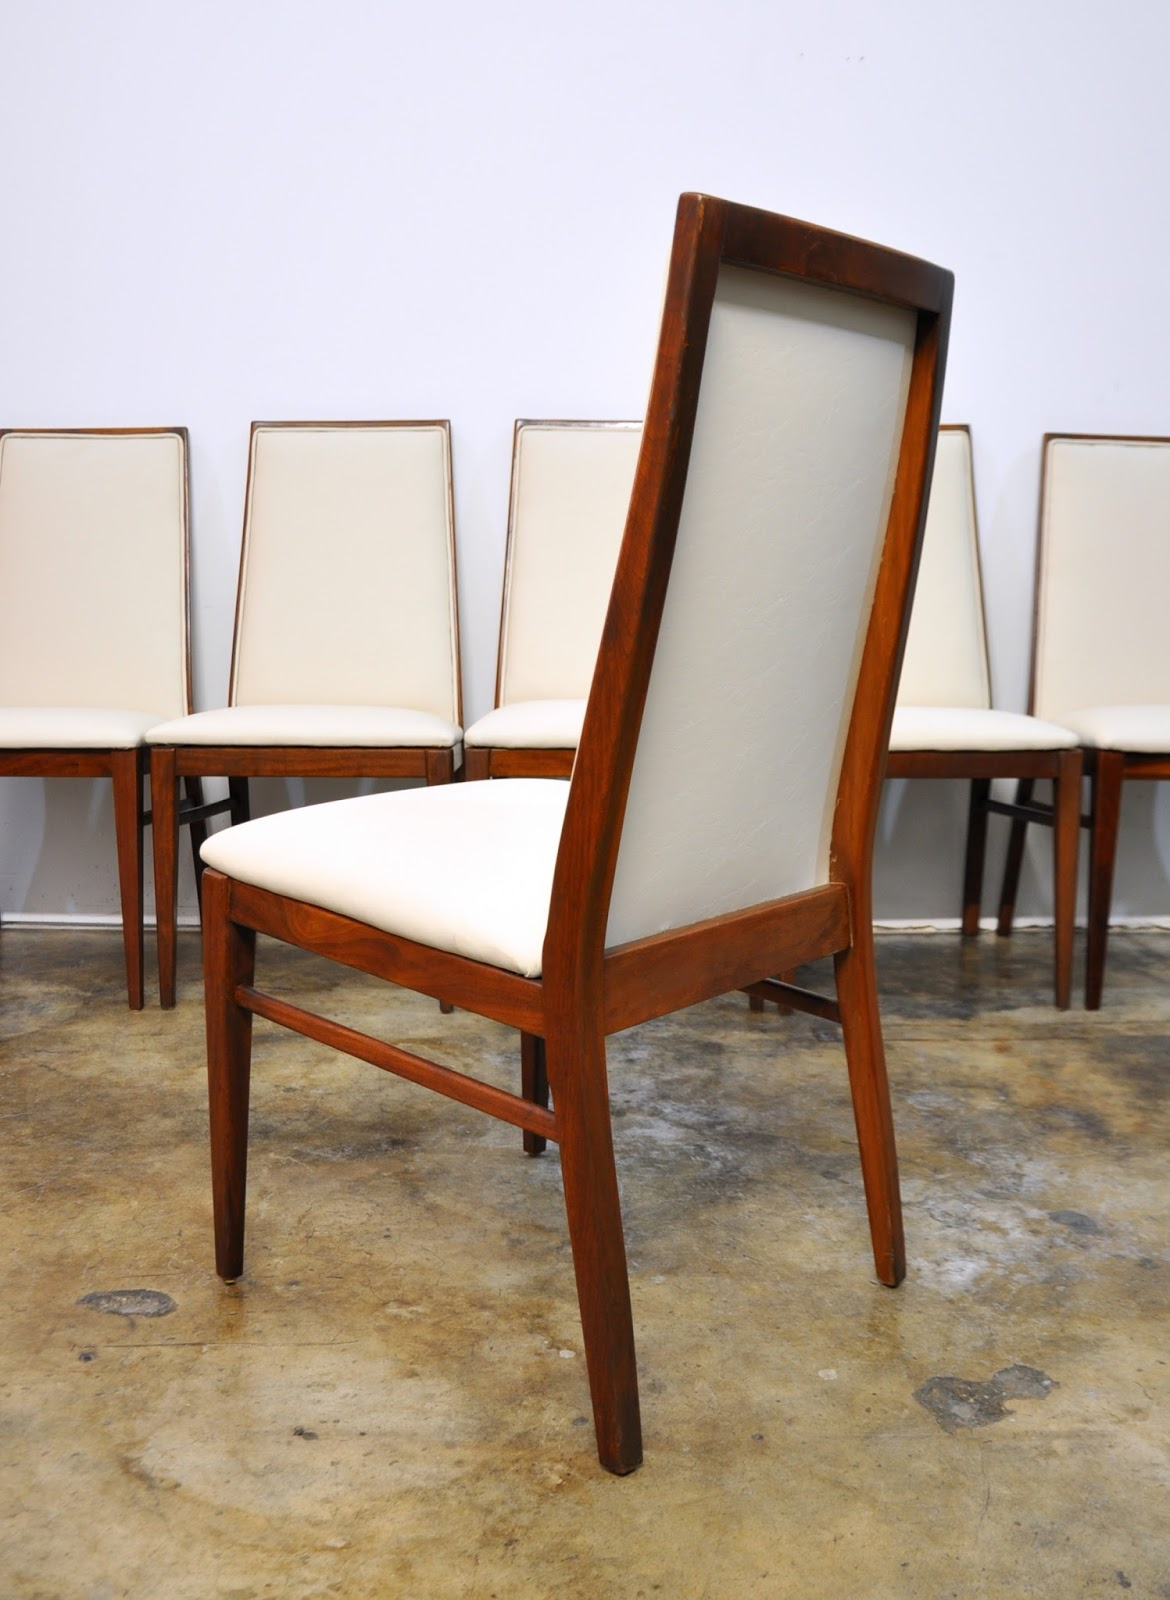 Milo Baughman Chairs Select Modern Set Of 6 Milo Baughman Dining Chairs